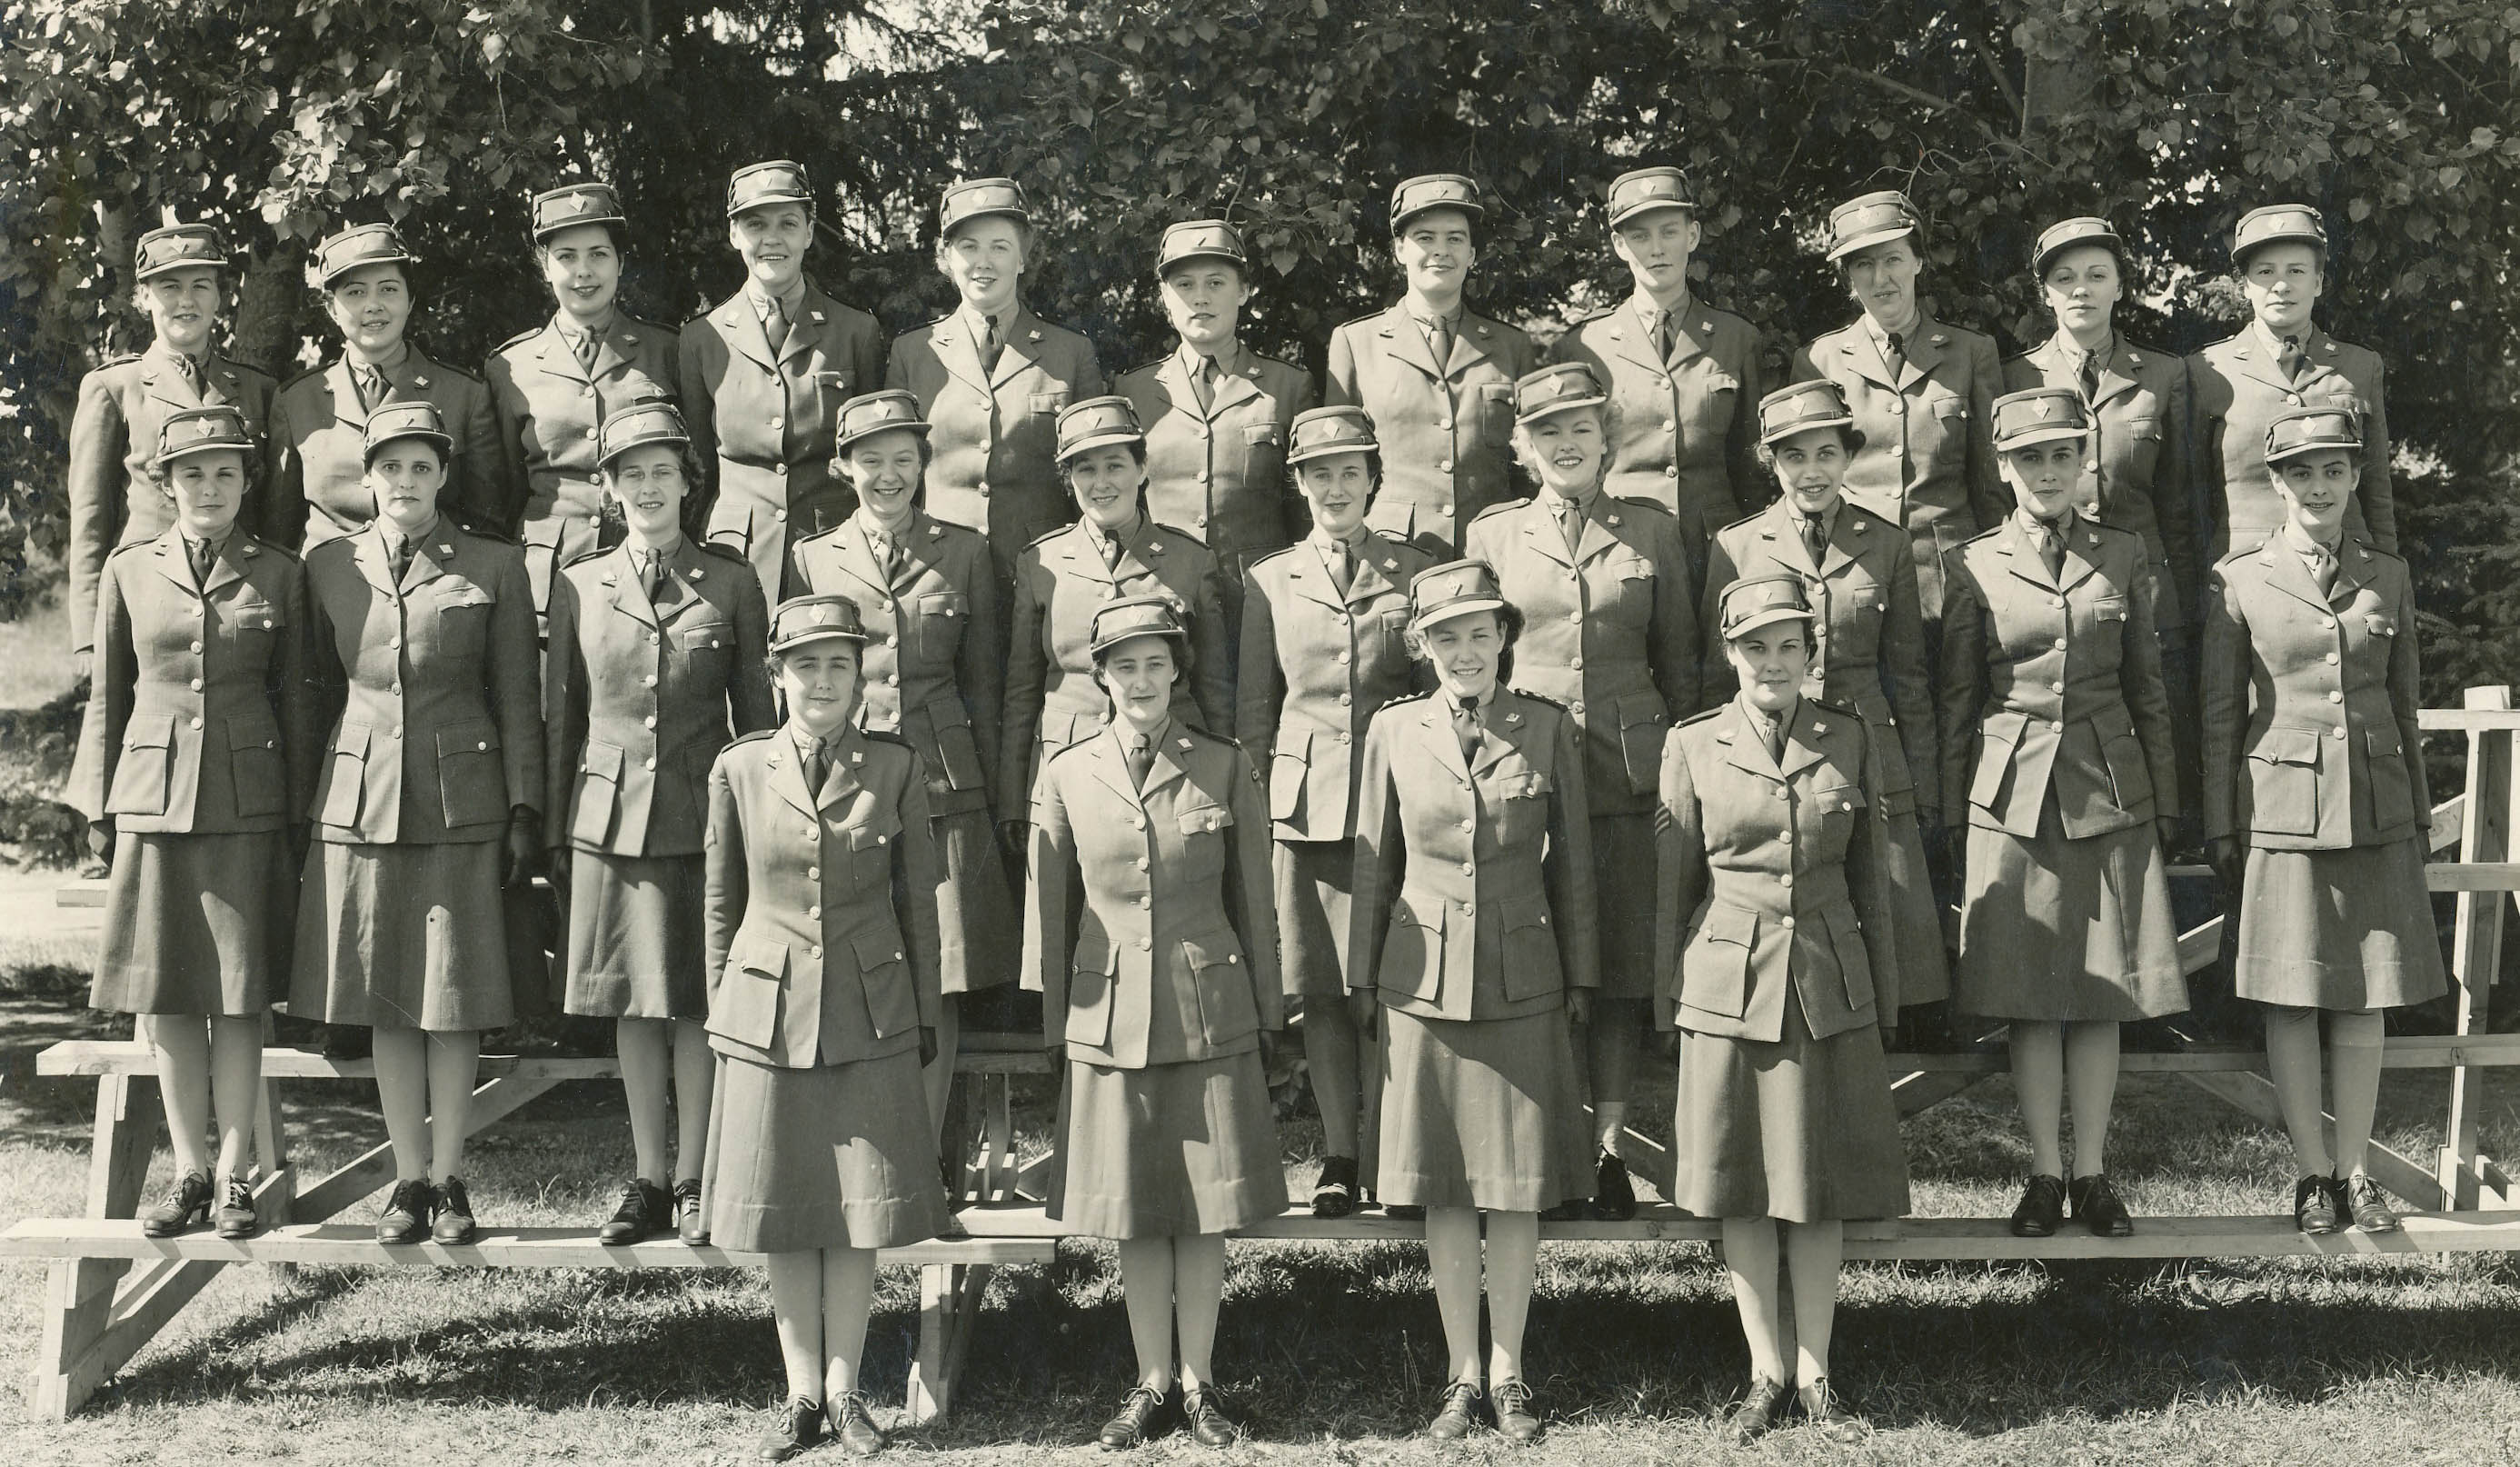 Women in the Canadian Military